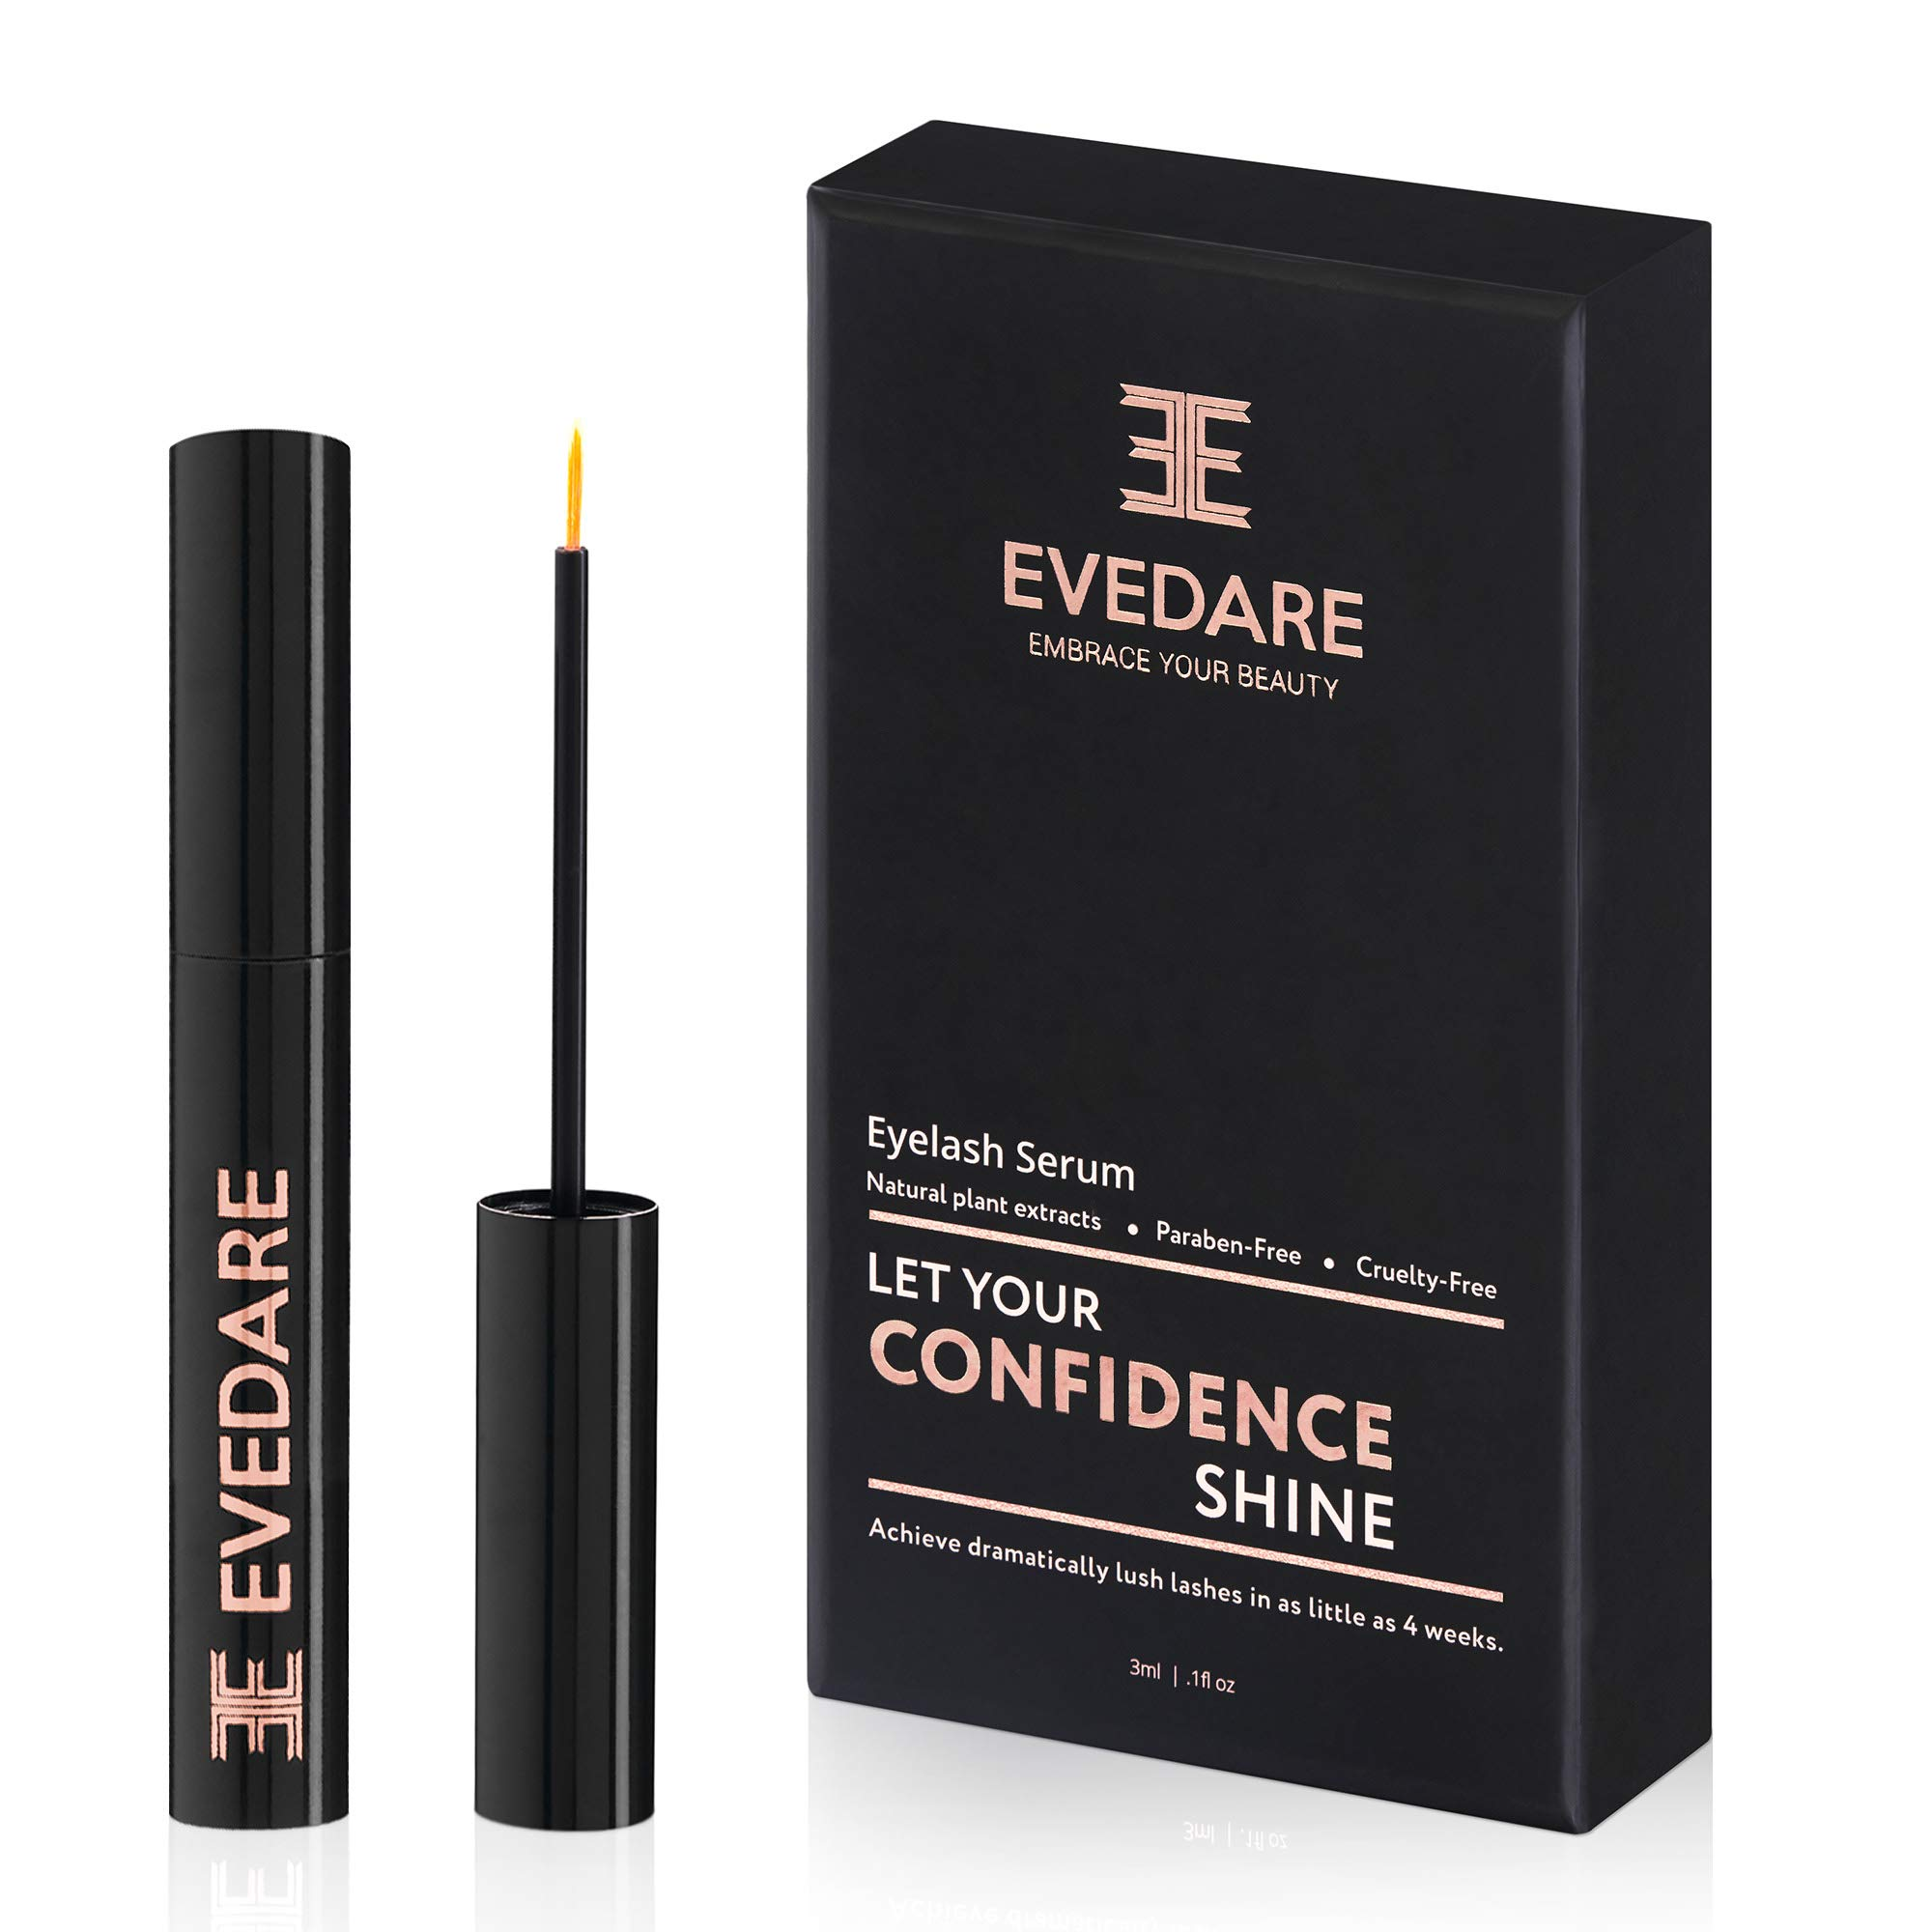 EVEDARE Advanced Eyelash Growth Serum with Enhancing Peptides and Botanical Vitamins for Longer, Thicker, Fuller Lashes, Natural Extracts Improve Strength, Reduce Brittleness by EVEDARE